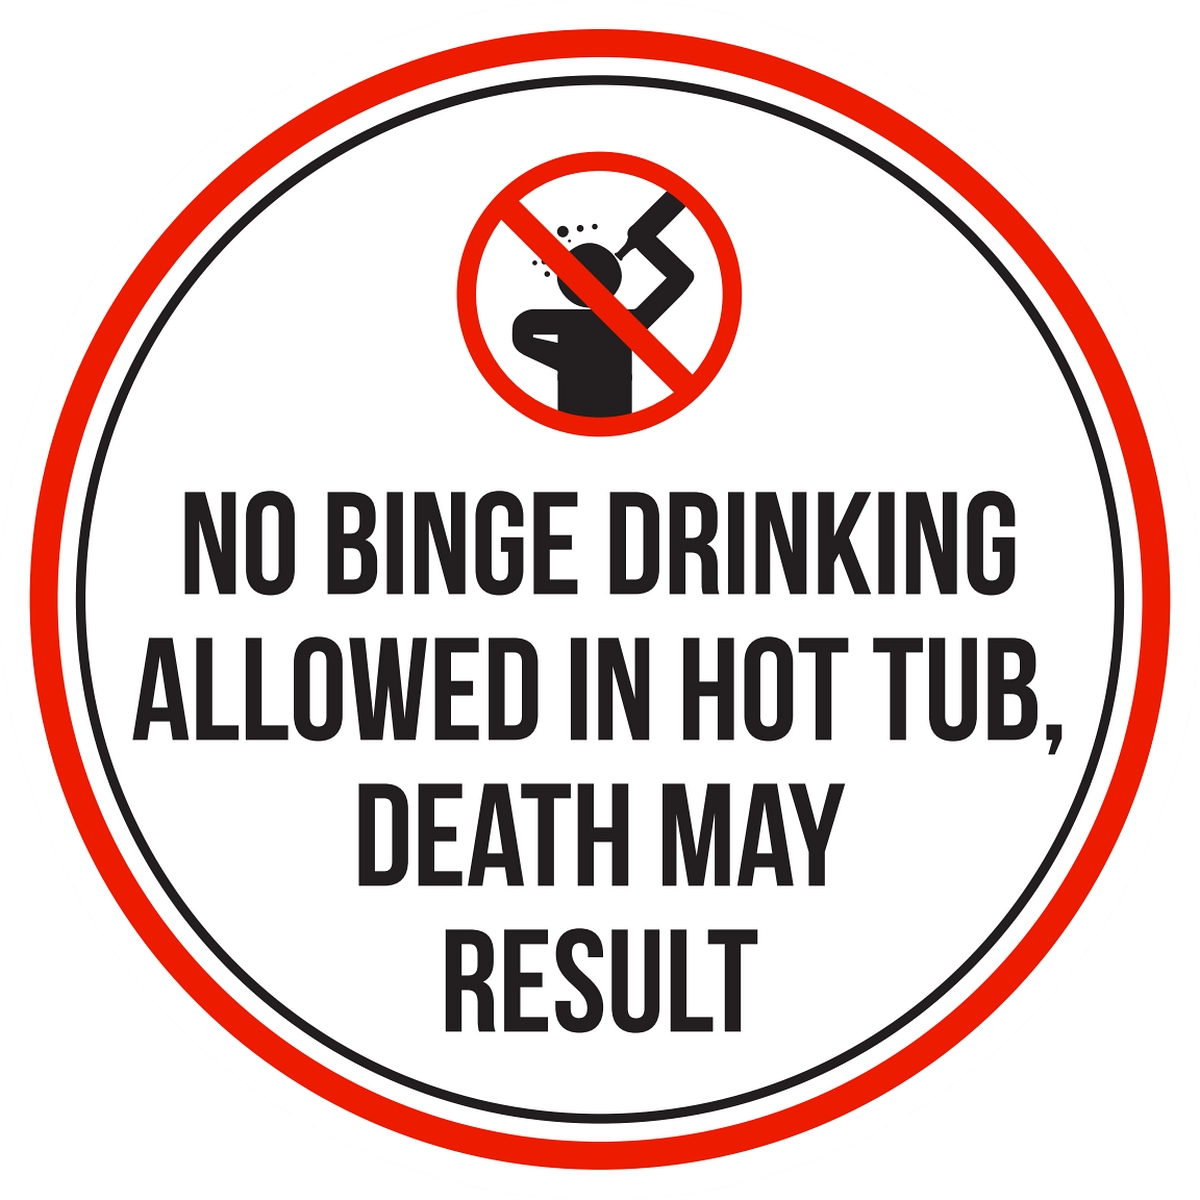 No Binge Drinking Allowed In Hot Tub, Death May Result Pool Spa Warning Round Sign 12 Inch by iCandy Products Inc